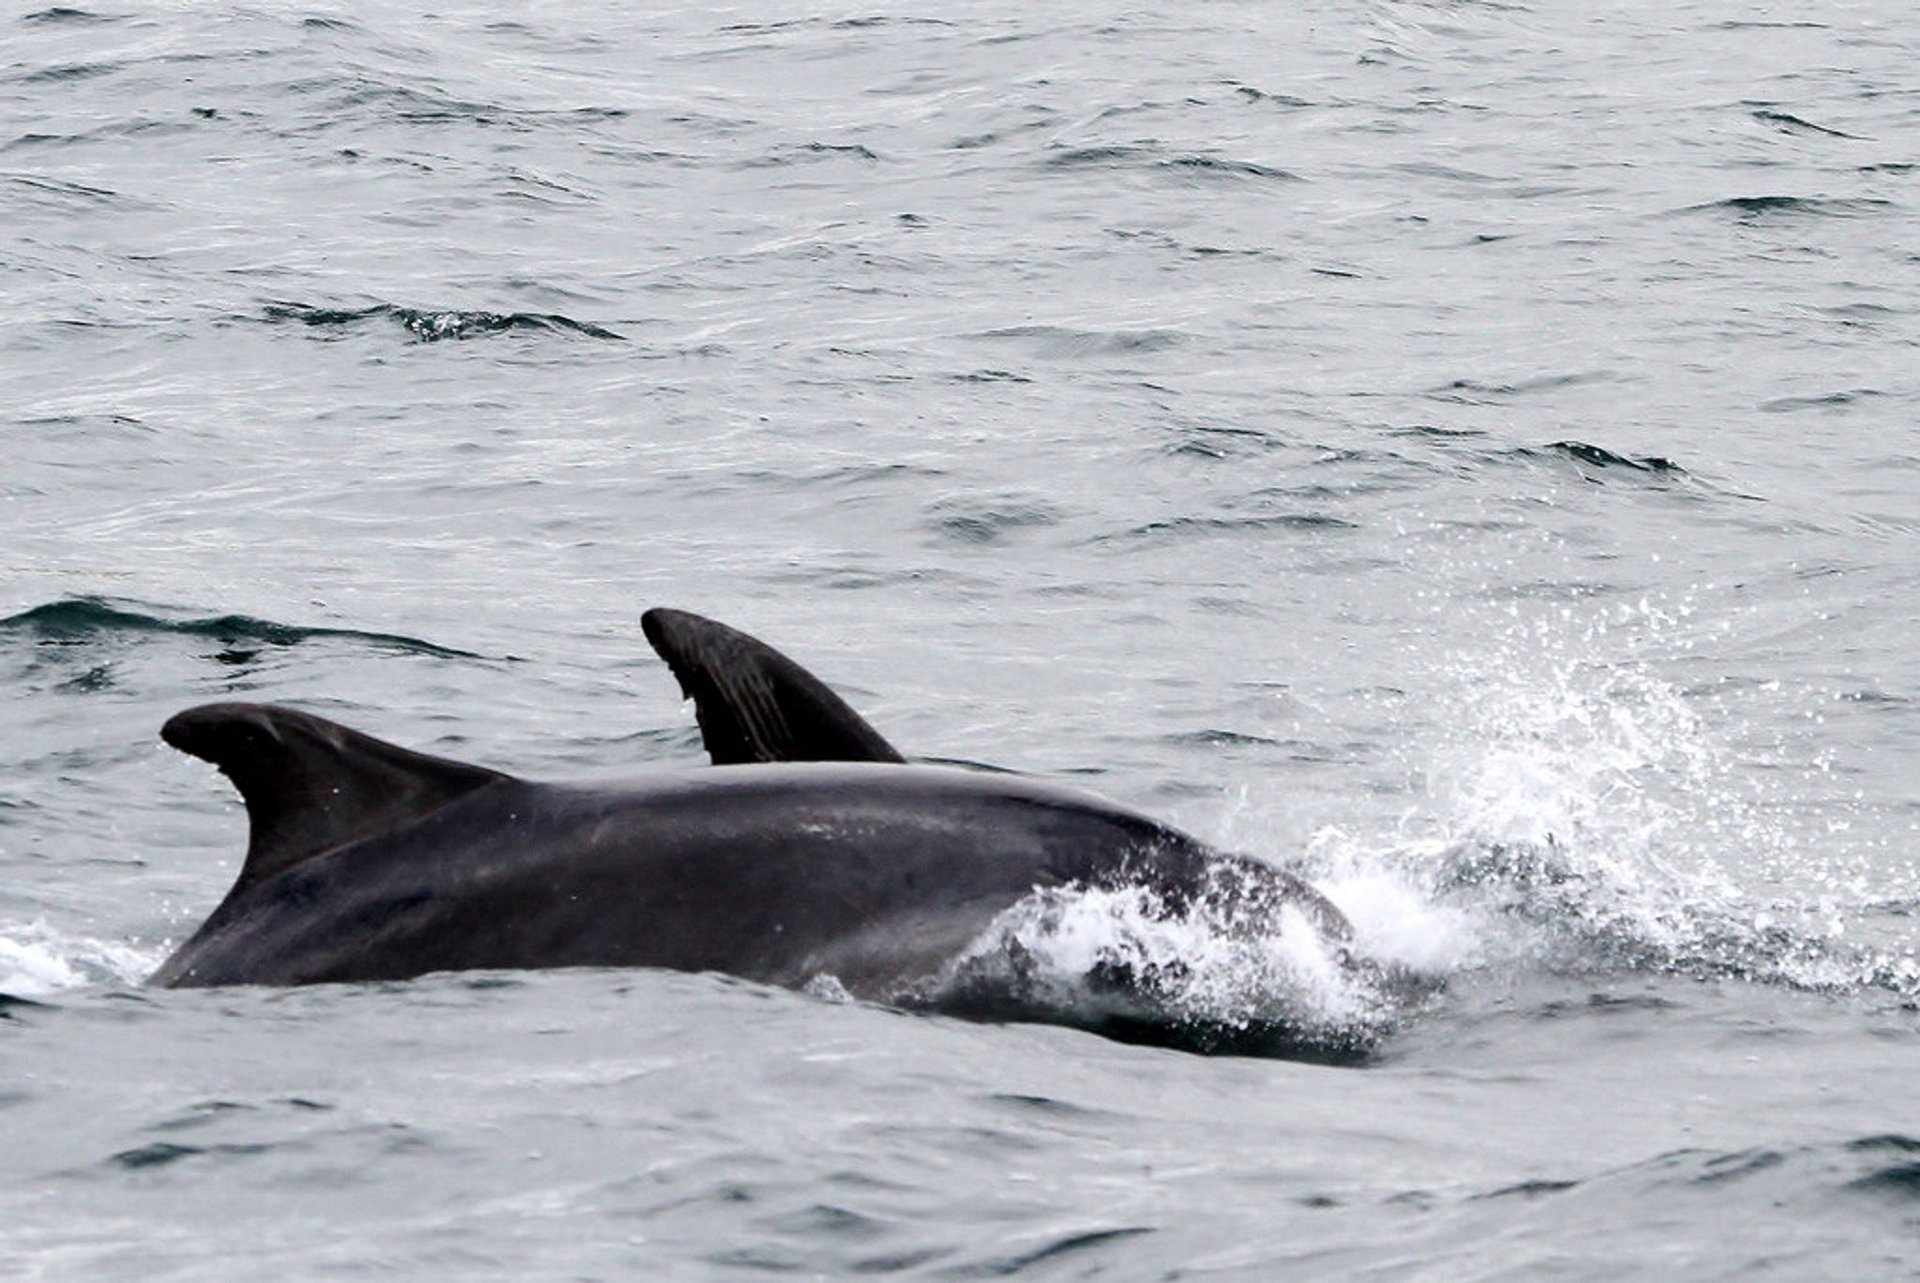 Atlantic Bottlenose Dolphins in Falmouth harbor 2019